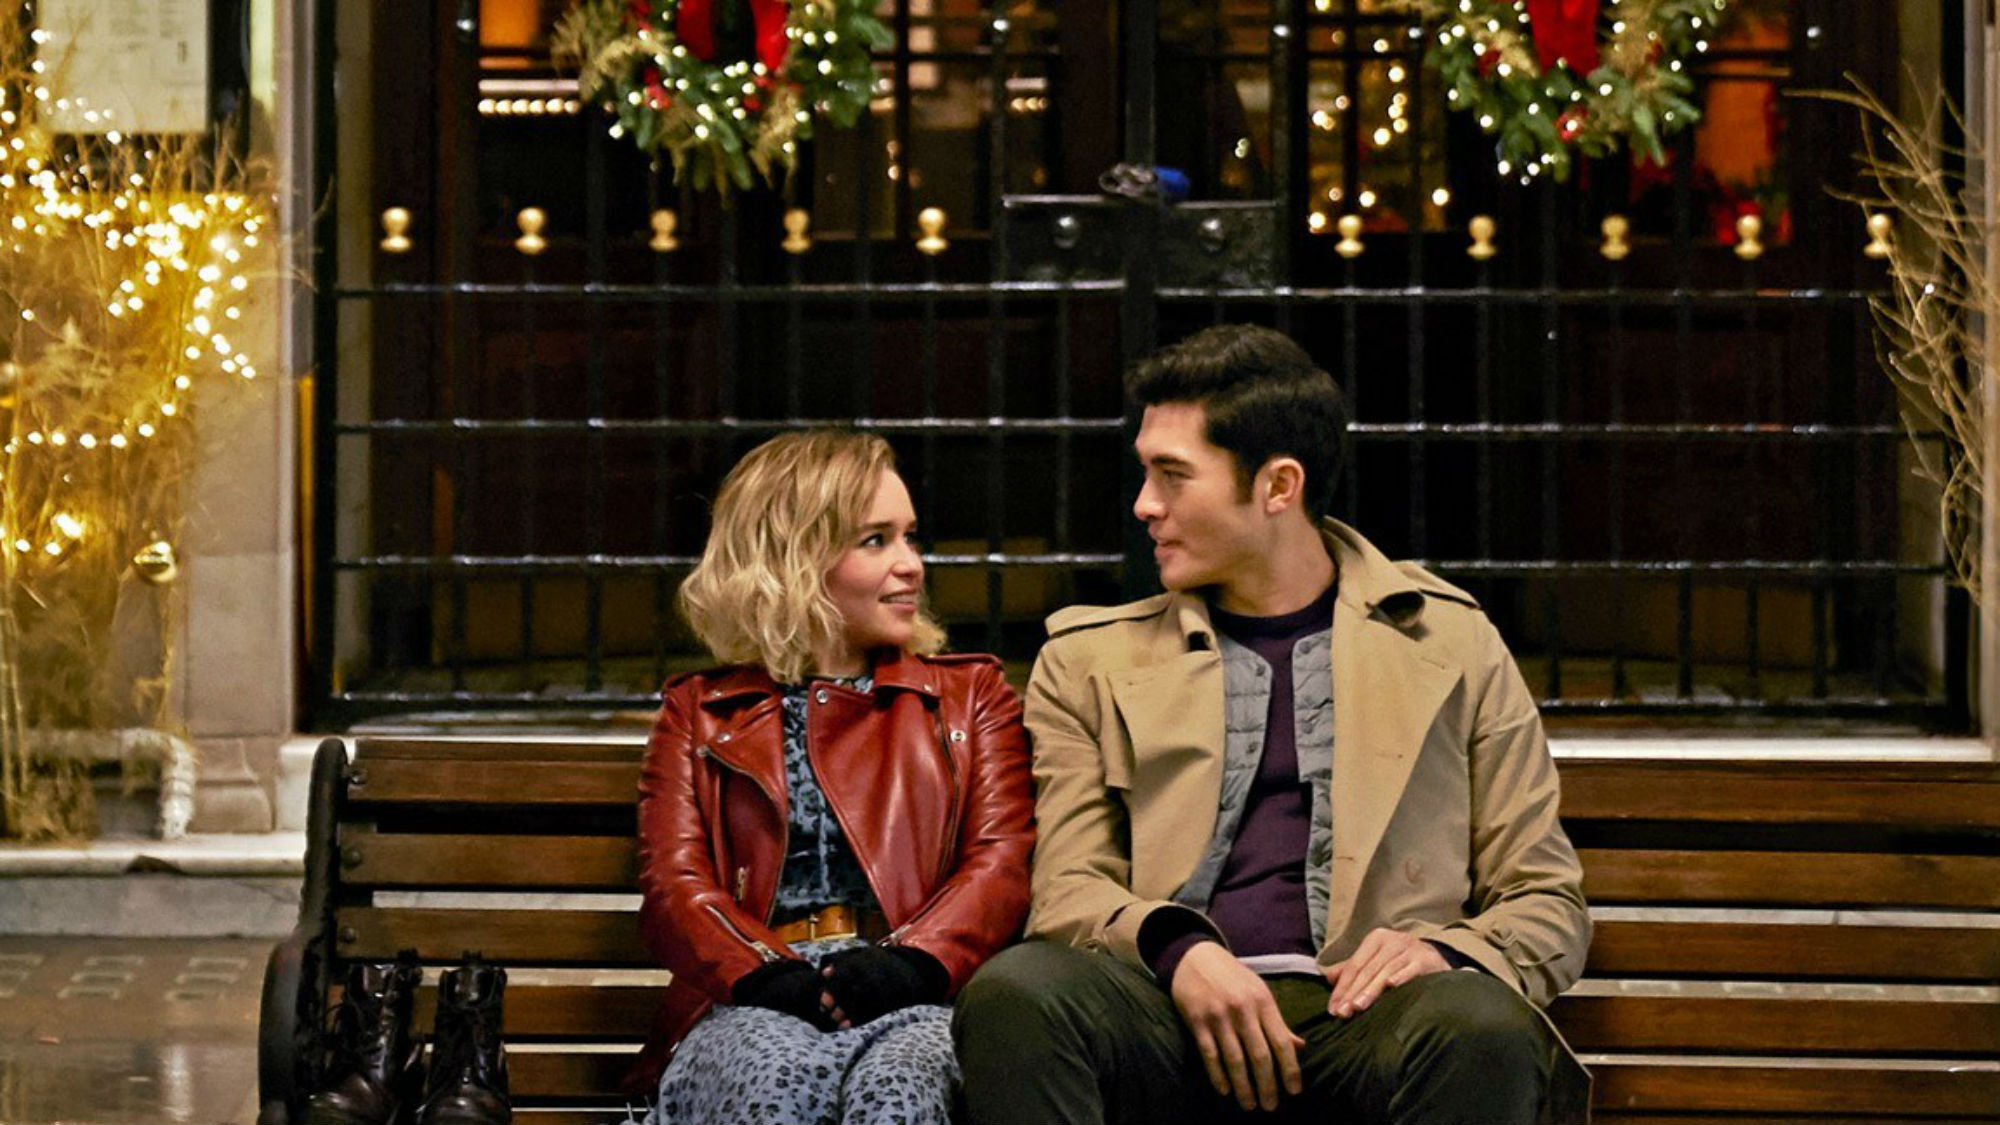 WATCH: Emilia Clarke and Henry Golding in Emma Thompson's 'Last Christmas' Trailer   Anglophenia ...